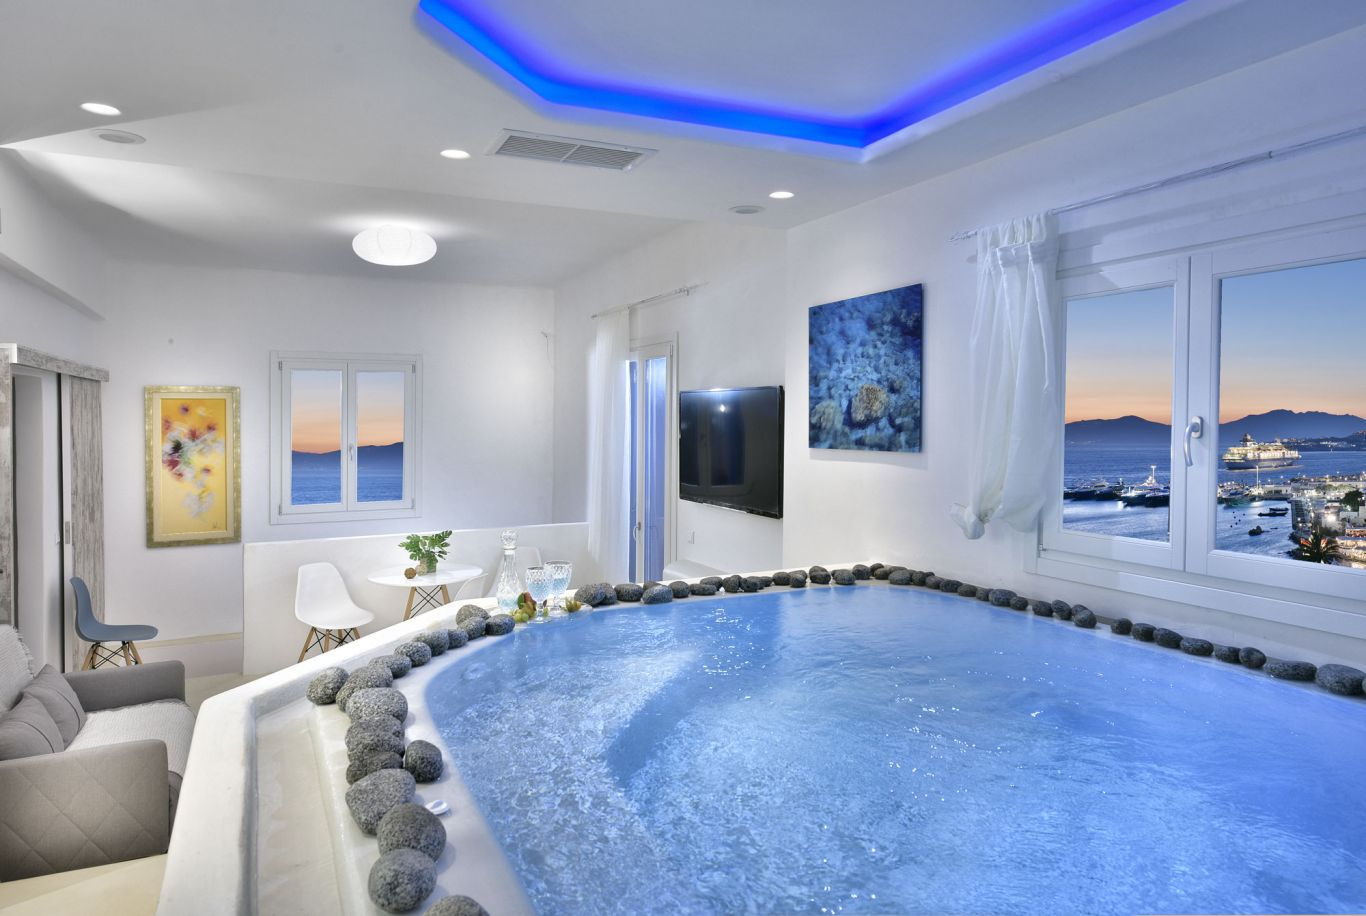 Upper Floor Room With Jacuzzi | Elegant